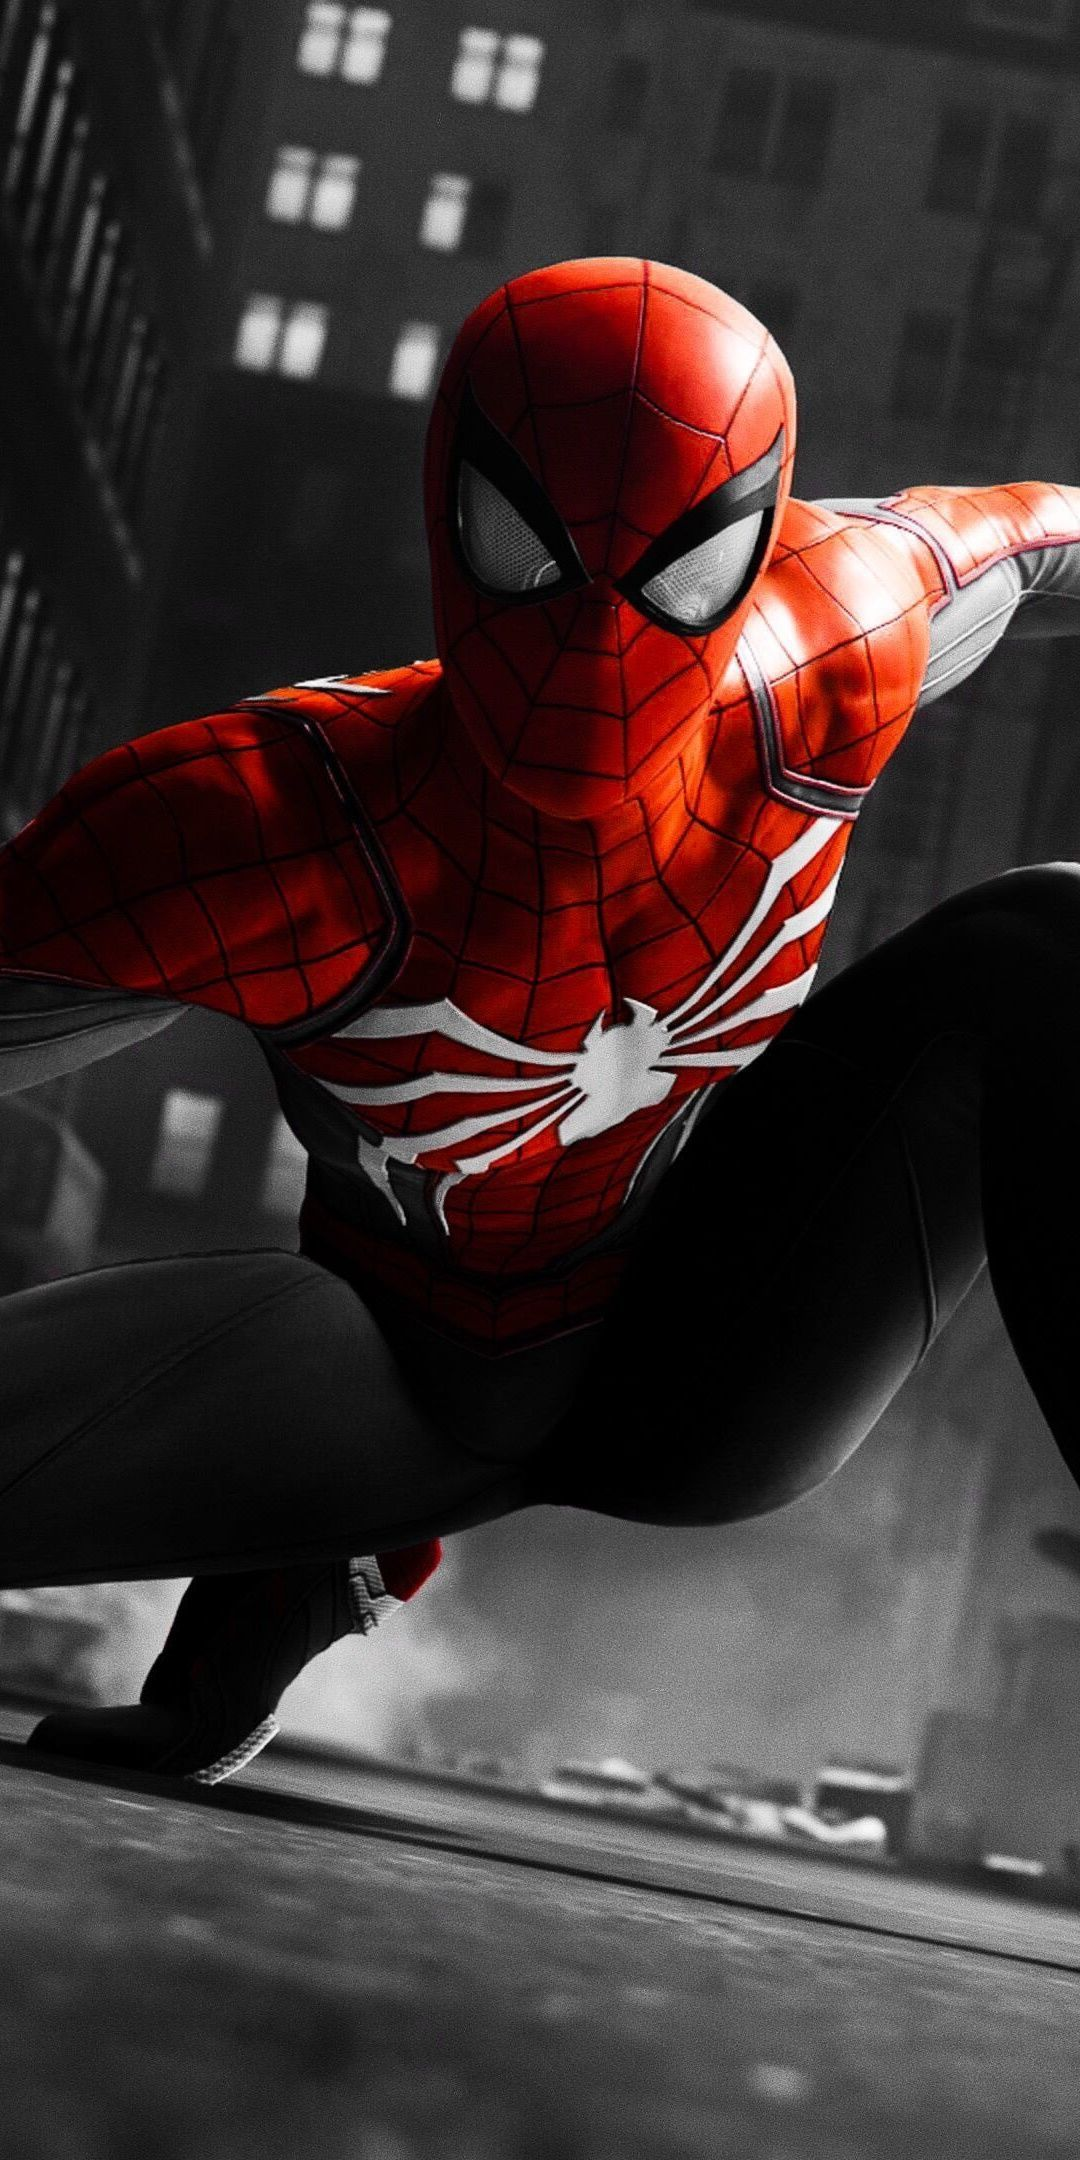 Black And Red Suit Spider Man Video Game 1080x2160 Wallpaper In 2020 Marvel Spiderman Spiderman Spiderman Ps4